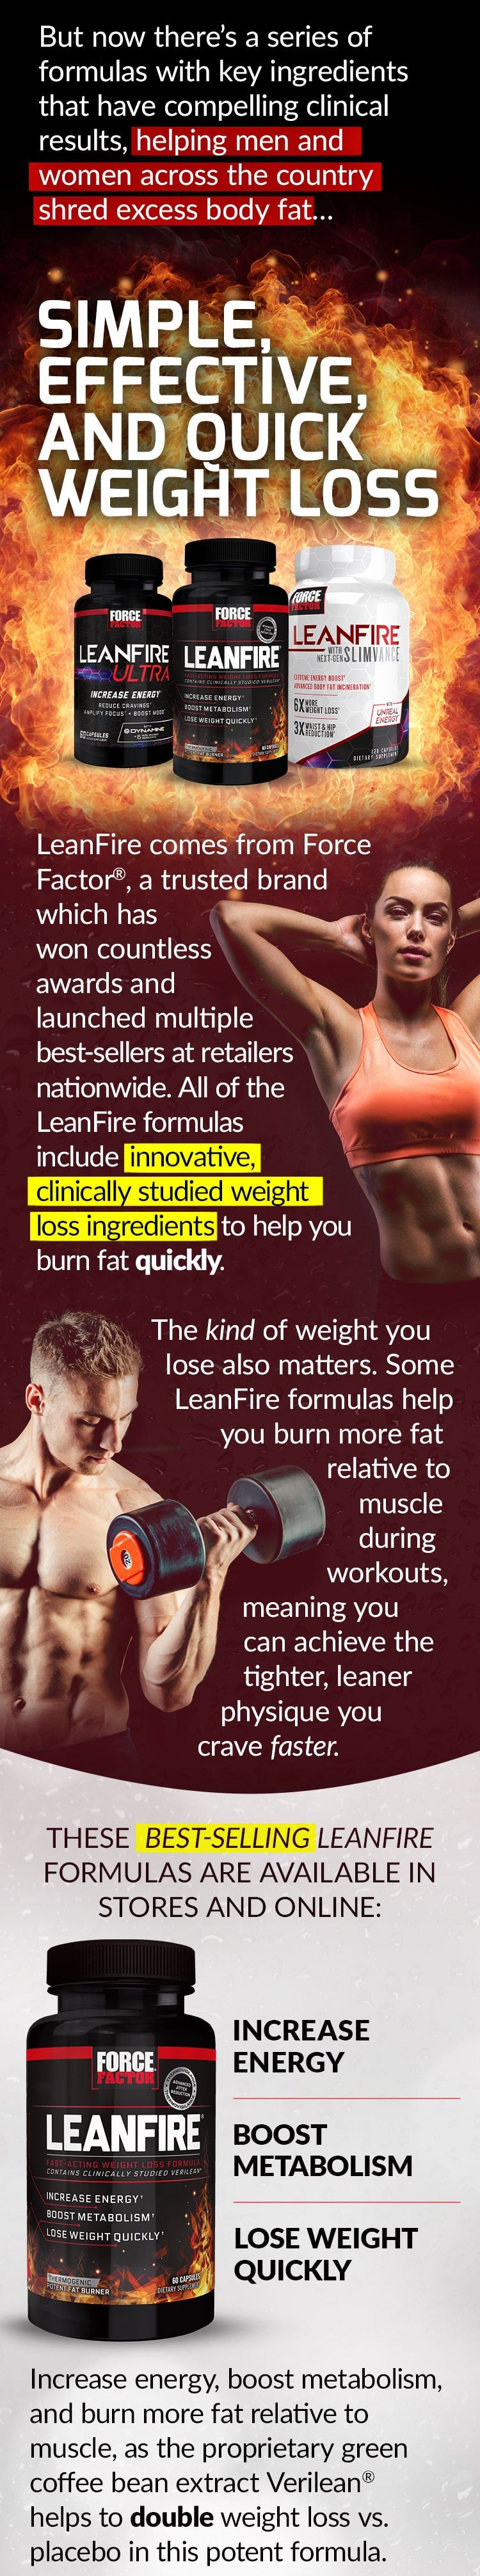 But now there's a series of formulas with key ingredients that have compelling clinical results, helping men and women across the country shred excess body fat... SIMPLE, EFFECTIVE, AND QUICK WEIGHT LOSS. LeanFire comes from Force Factor®, a trusted brand which has won countless awards and launched multiple best-sellers at retailers nationwide. All of the LeanFire formulas include innovative, clinically studied weight loss ingredients to help you burn fat quickly. The kind of weight you lose also matters. Some LeanFire formulas help you burn more fat relative to muscle during workouts, meaning you can achieve the tighter, leaner physique you crave faster. THESE BEST-SELLING LEANFIRE FORMULAS ARE AVAILABLE IN STORES AND ONLINE: LeanFire® - Increase Energy, Boost Metabolism, Lose Weight Quickly. Increase energy, boost metabolism, and burn more fat relative to muscle, as the proprietary green coffee bean extract Verilean® helps to double weight loss vs. placebo in this potent formula.